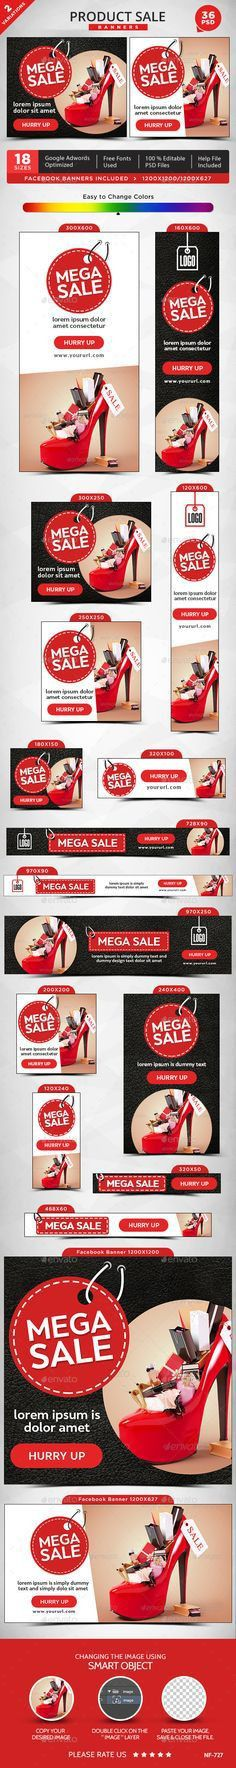 Instagram Banner Templates - 12 Designs | Banner template, Banners ...